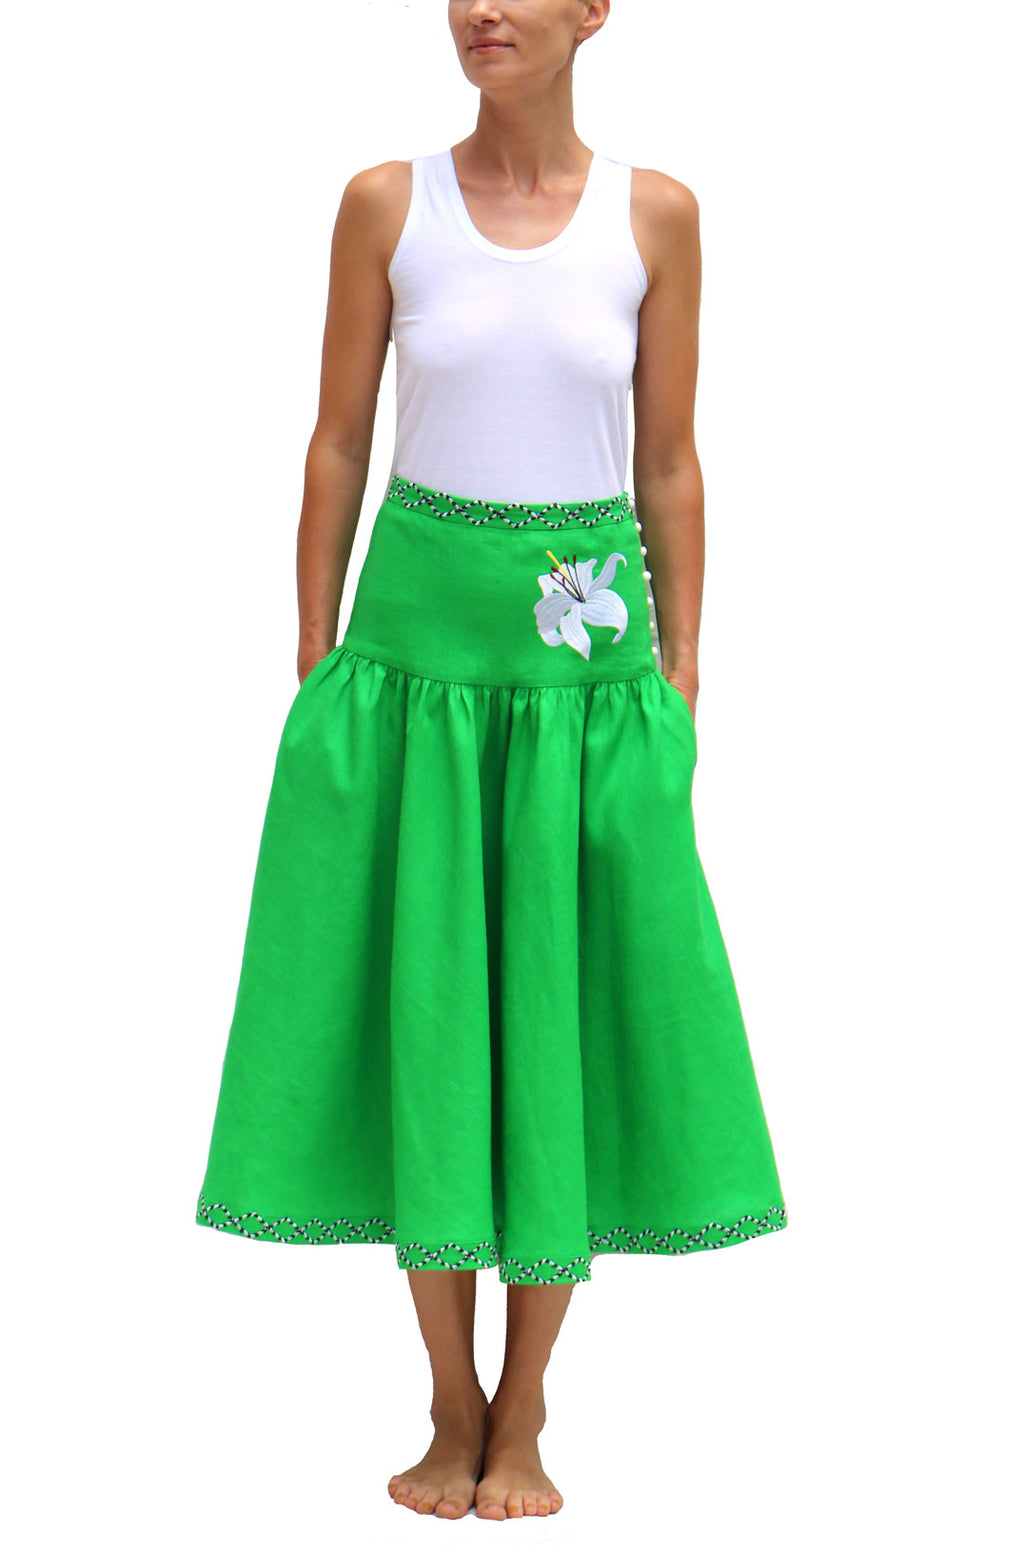 Green Linen Skirt with White Embroidery Long Skirt